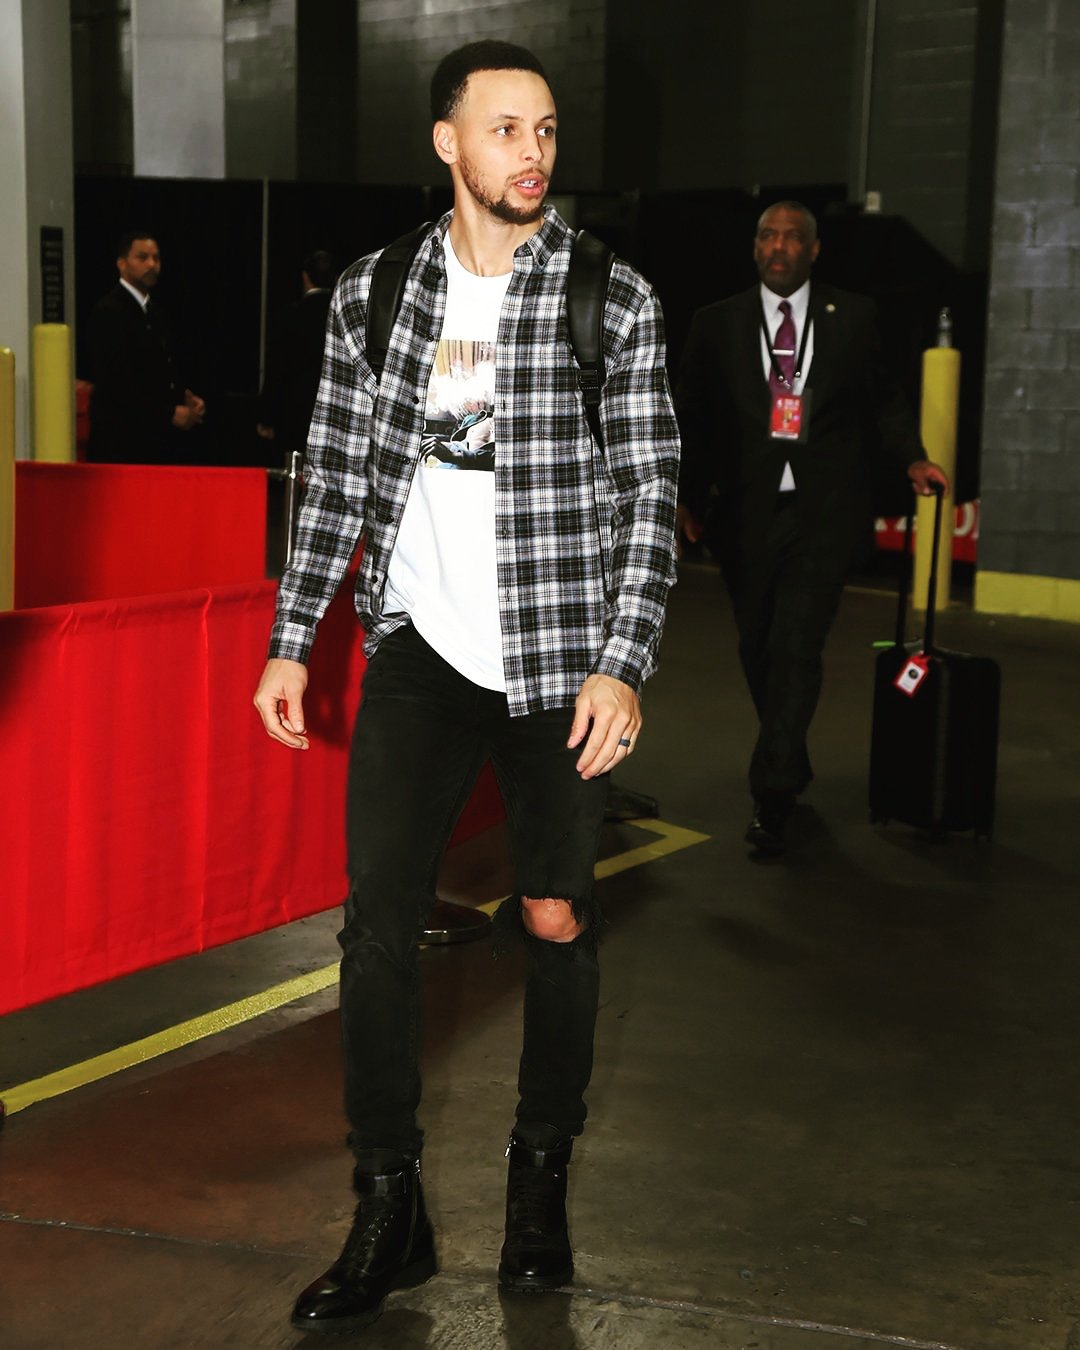 Happy birthday, Stephen Curry    Best wishes to you keep healthy.